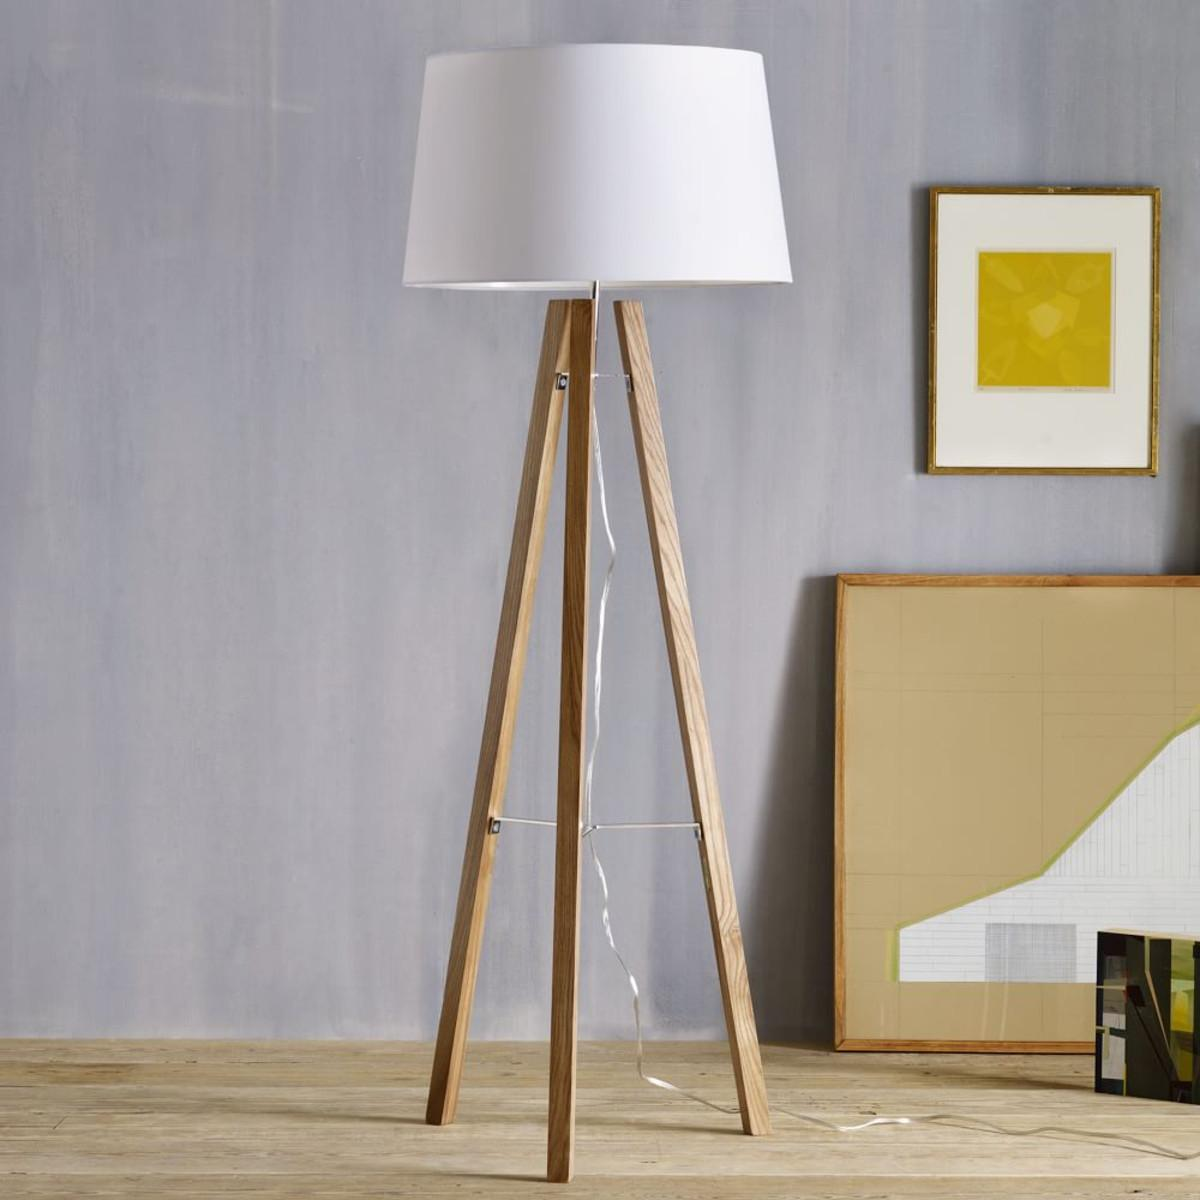 Image result for tripod floor lamp images